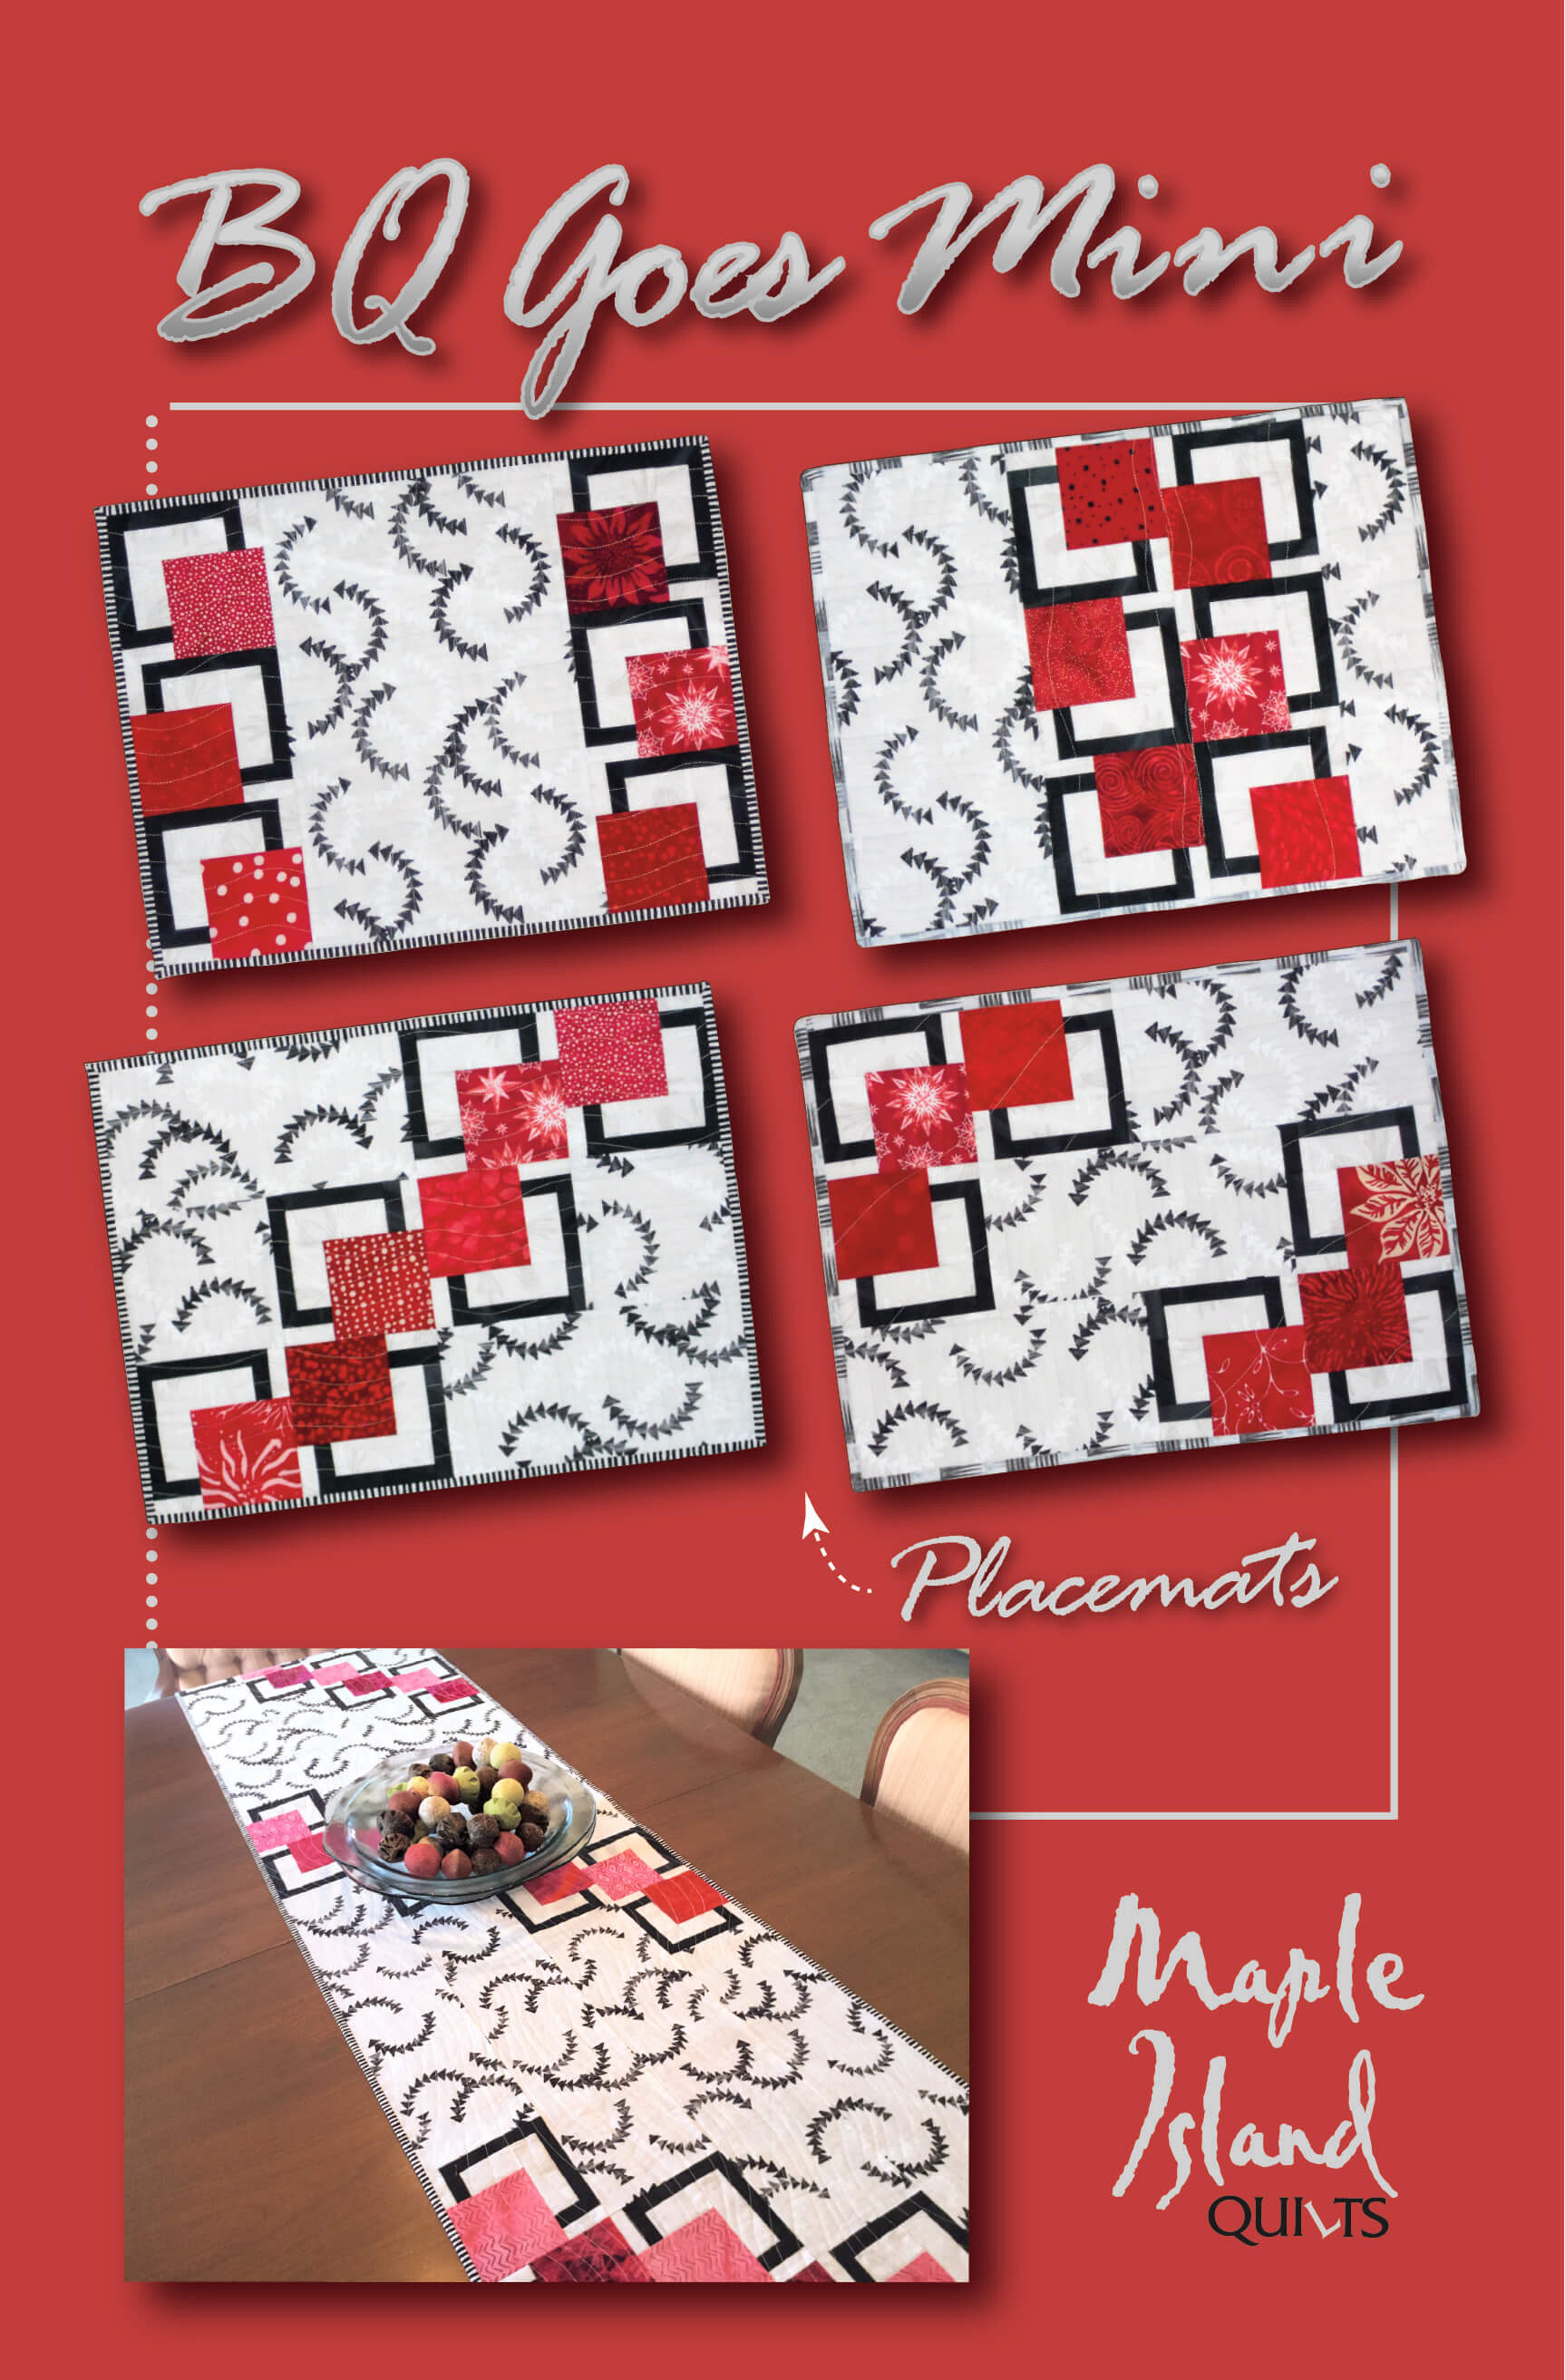 All MIQ Patterns – Maple Island Quilts